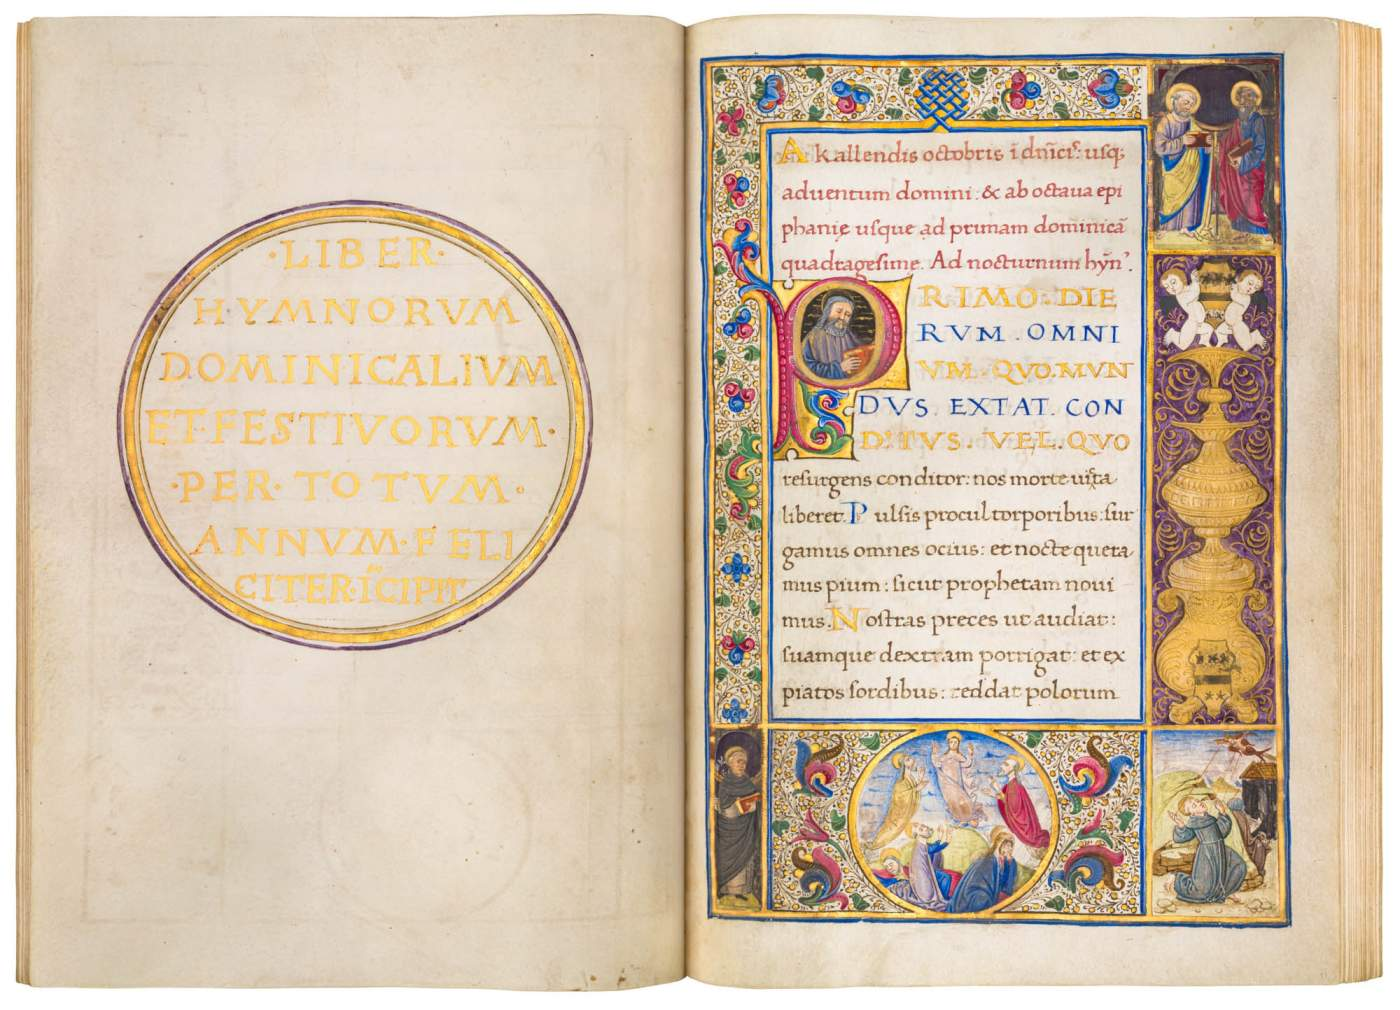 Gorgeous Hymnal by the Illuminator of King Alfonso V's Court